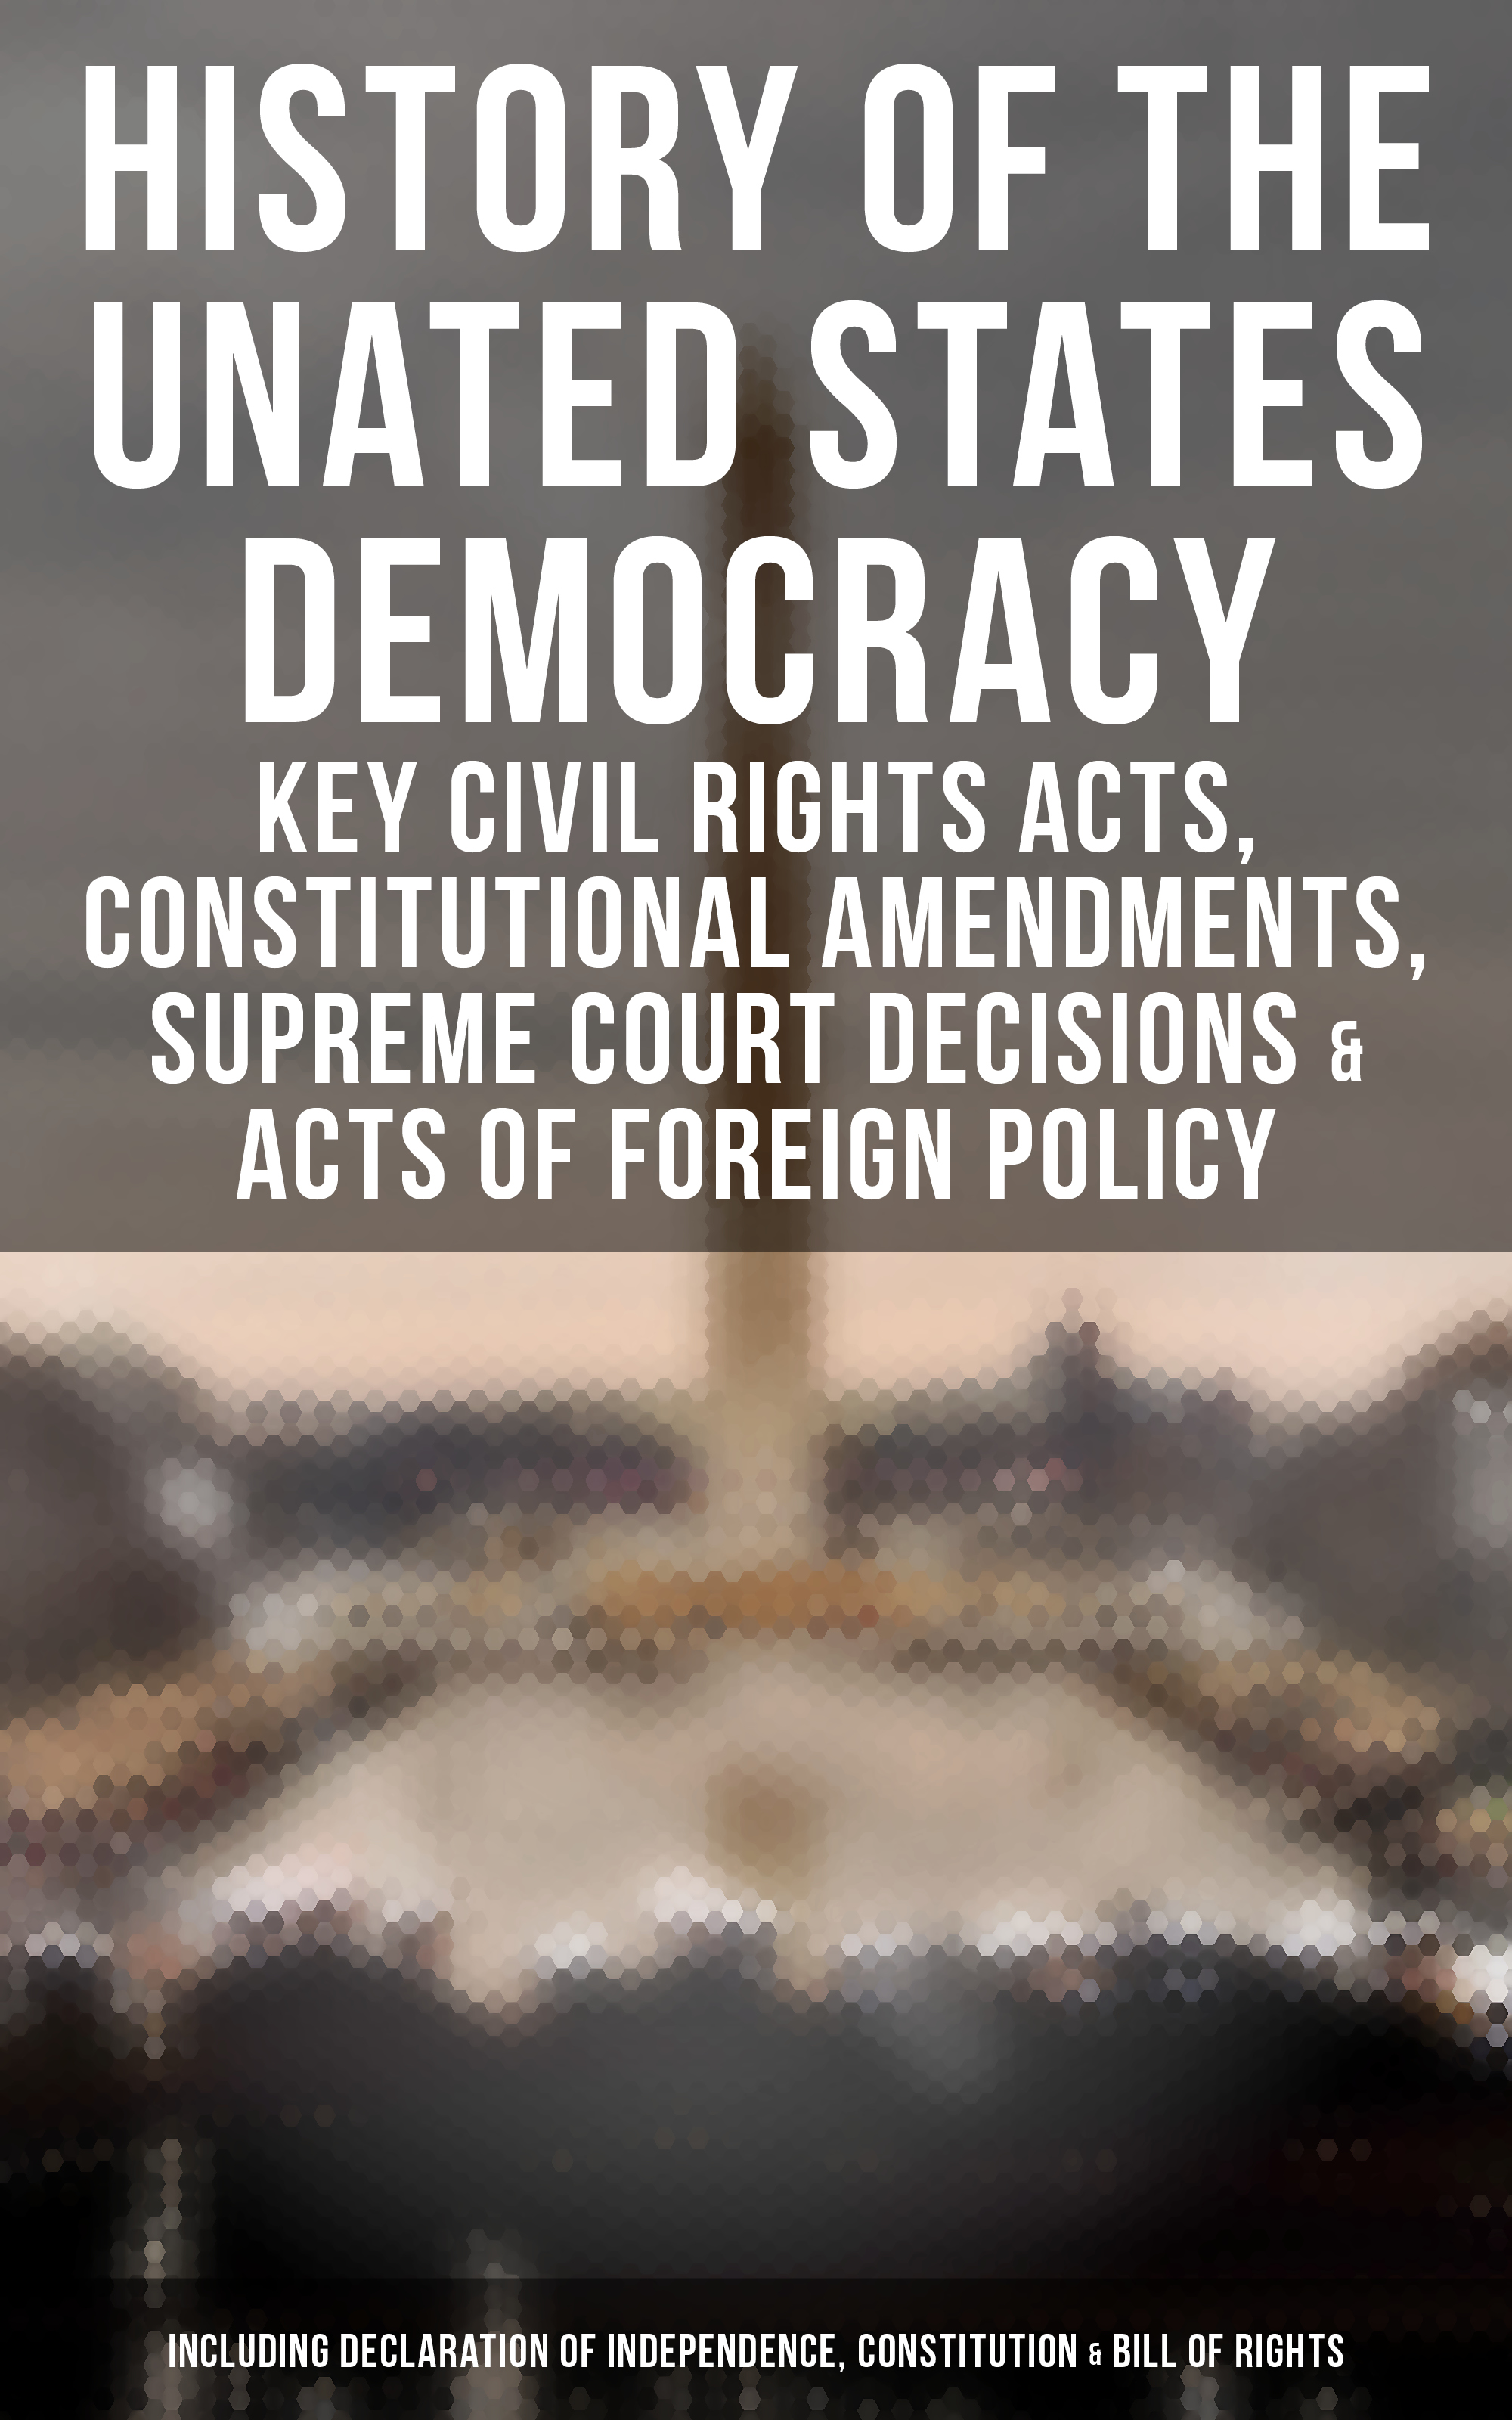 U.S. Congress History of the Unated States Democracy: Key Civil Rights Acts, Constitutional Amendments, Supreme Court Decisions & Acts of Foreign Policy (Including Declaration of Independence, Constitution & Bill of Rights) цена